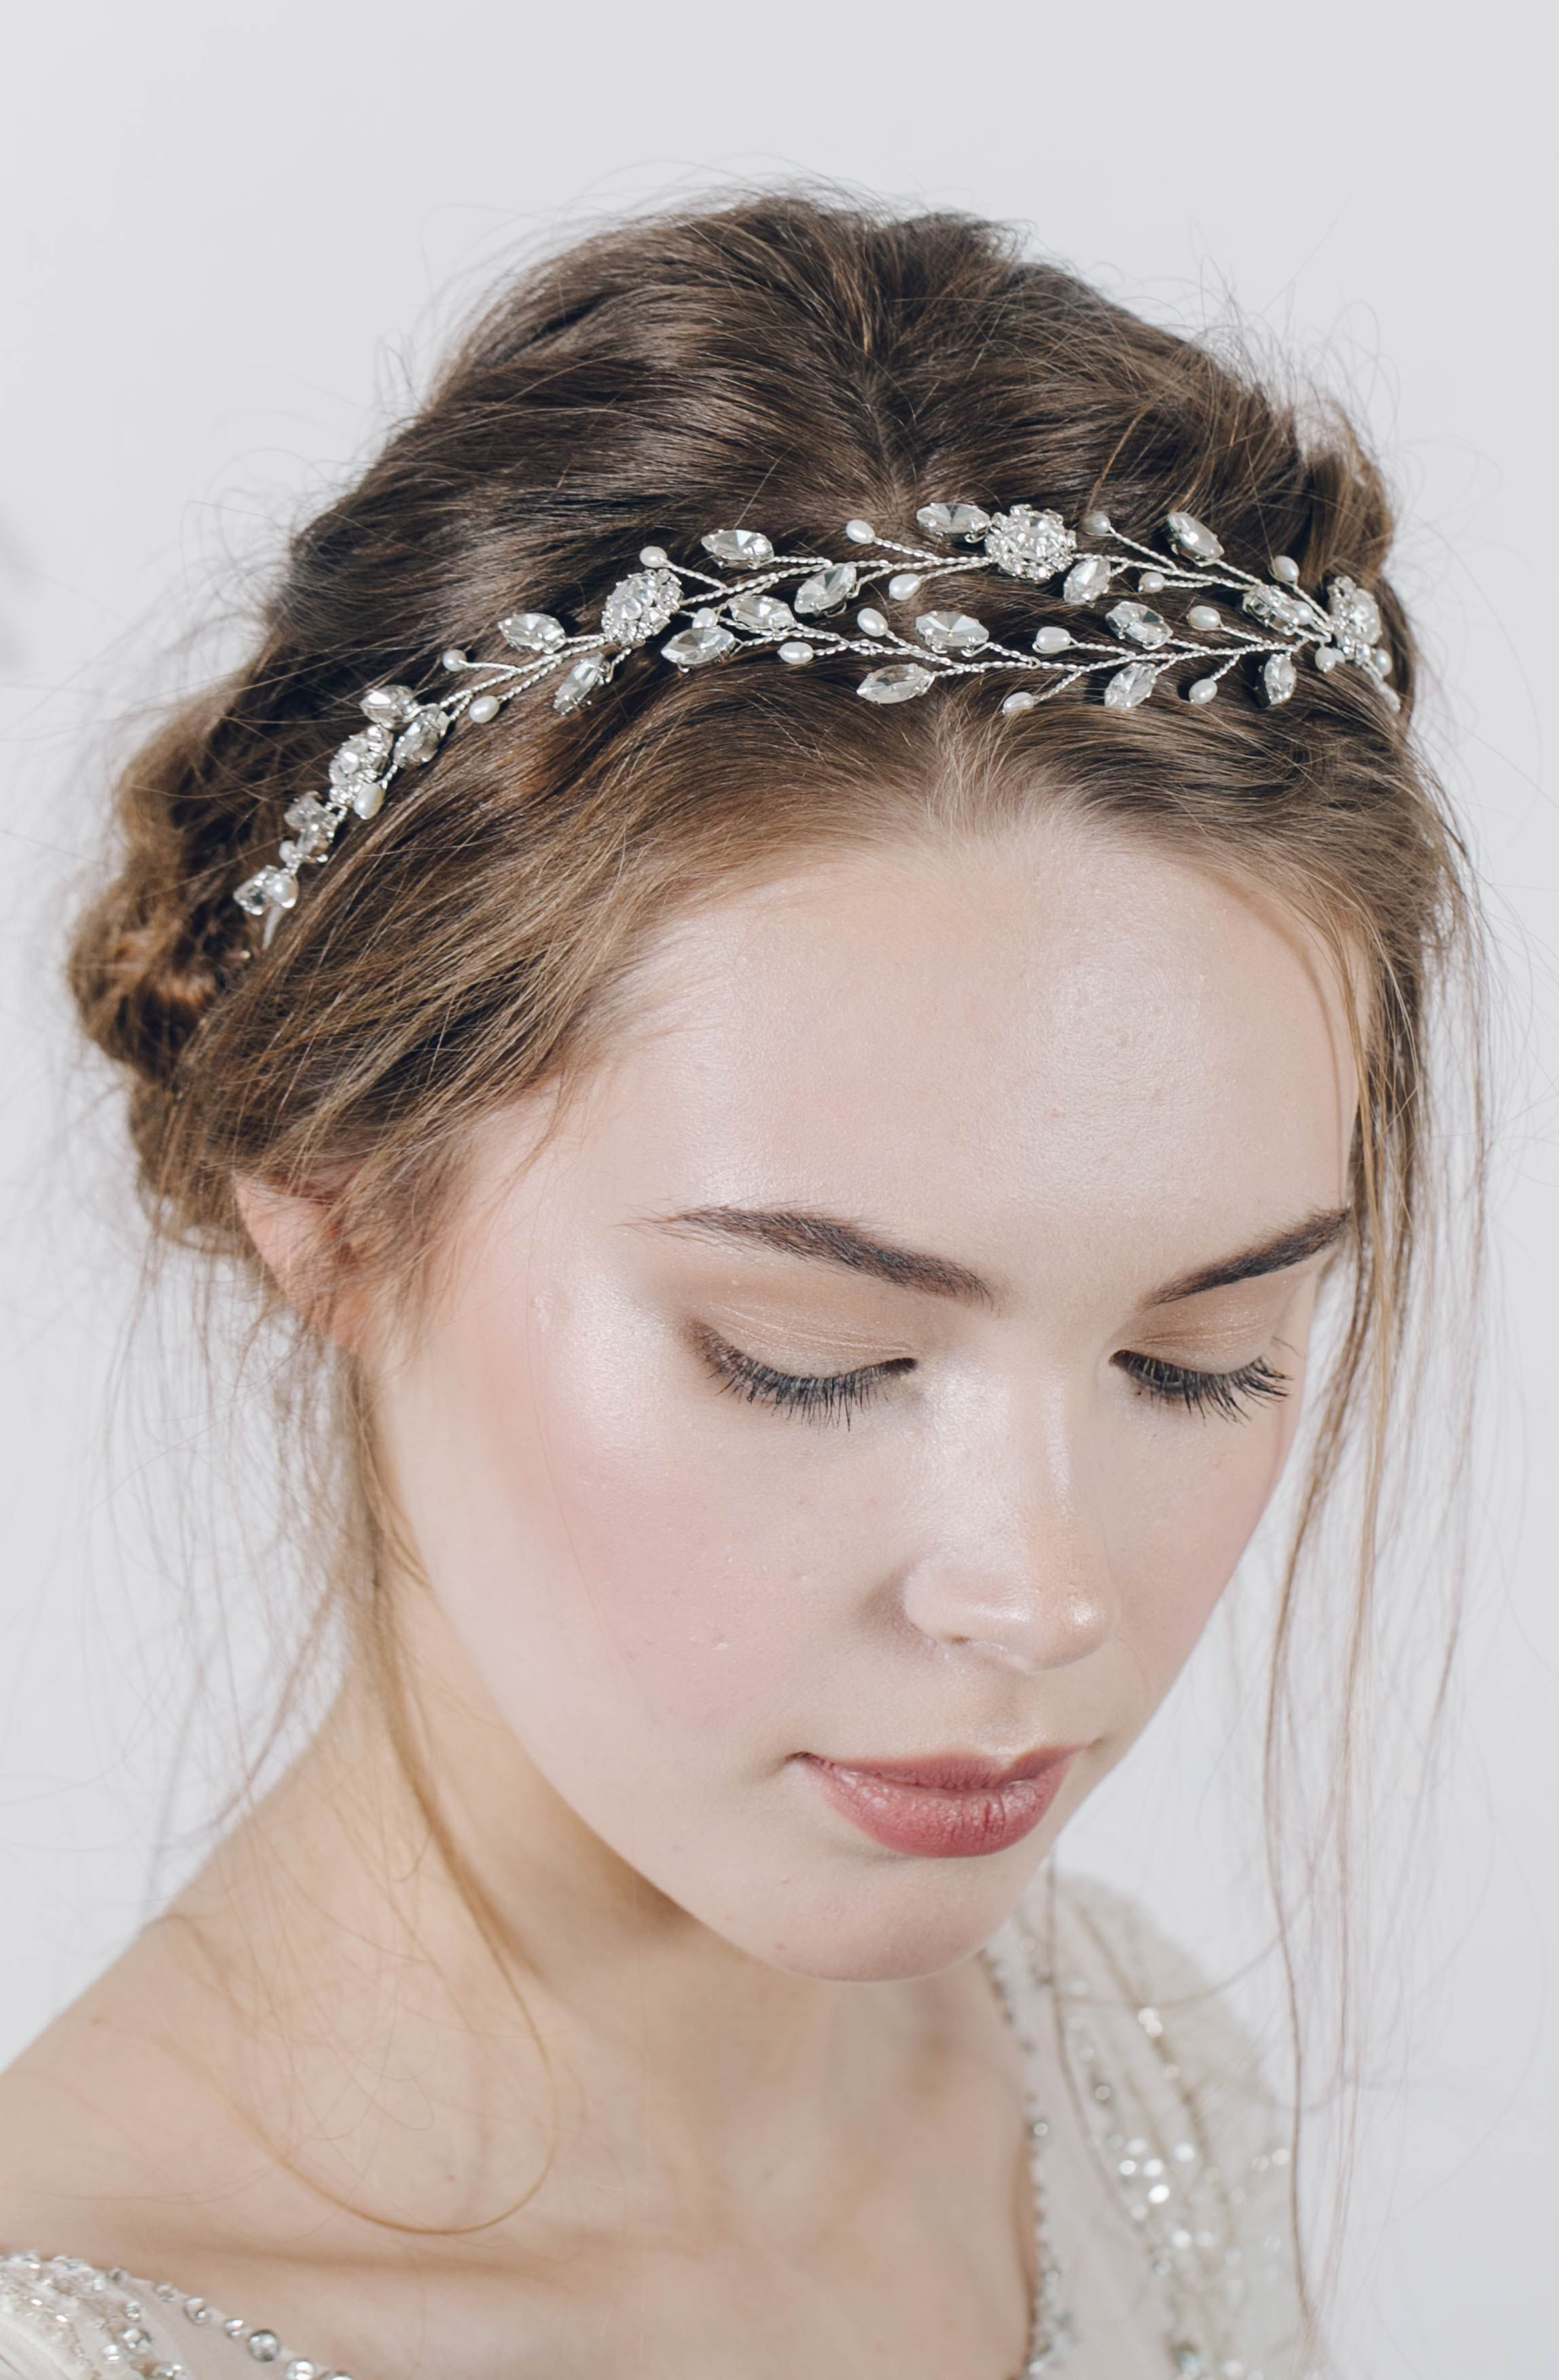 pin by maria urias on tiaras | wedding hair accessories